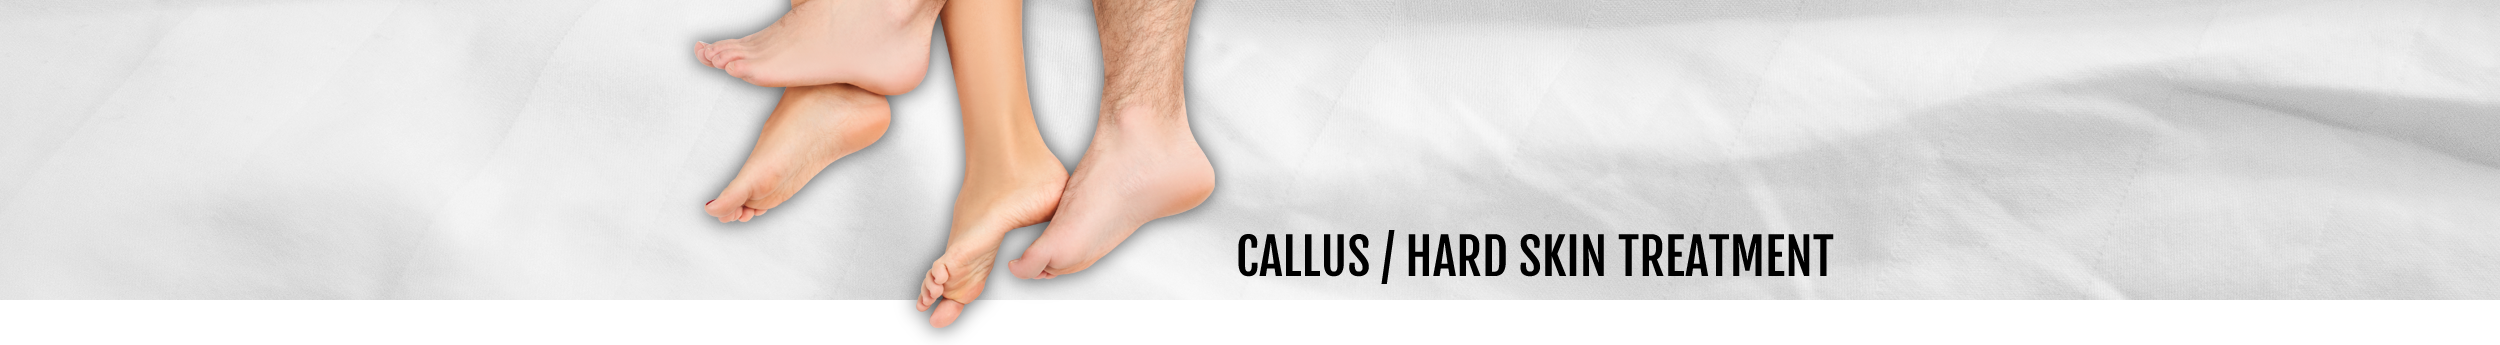 Callus / Hard Skin treatment header for the Walk IN Foot Clinic in central London